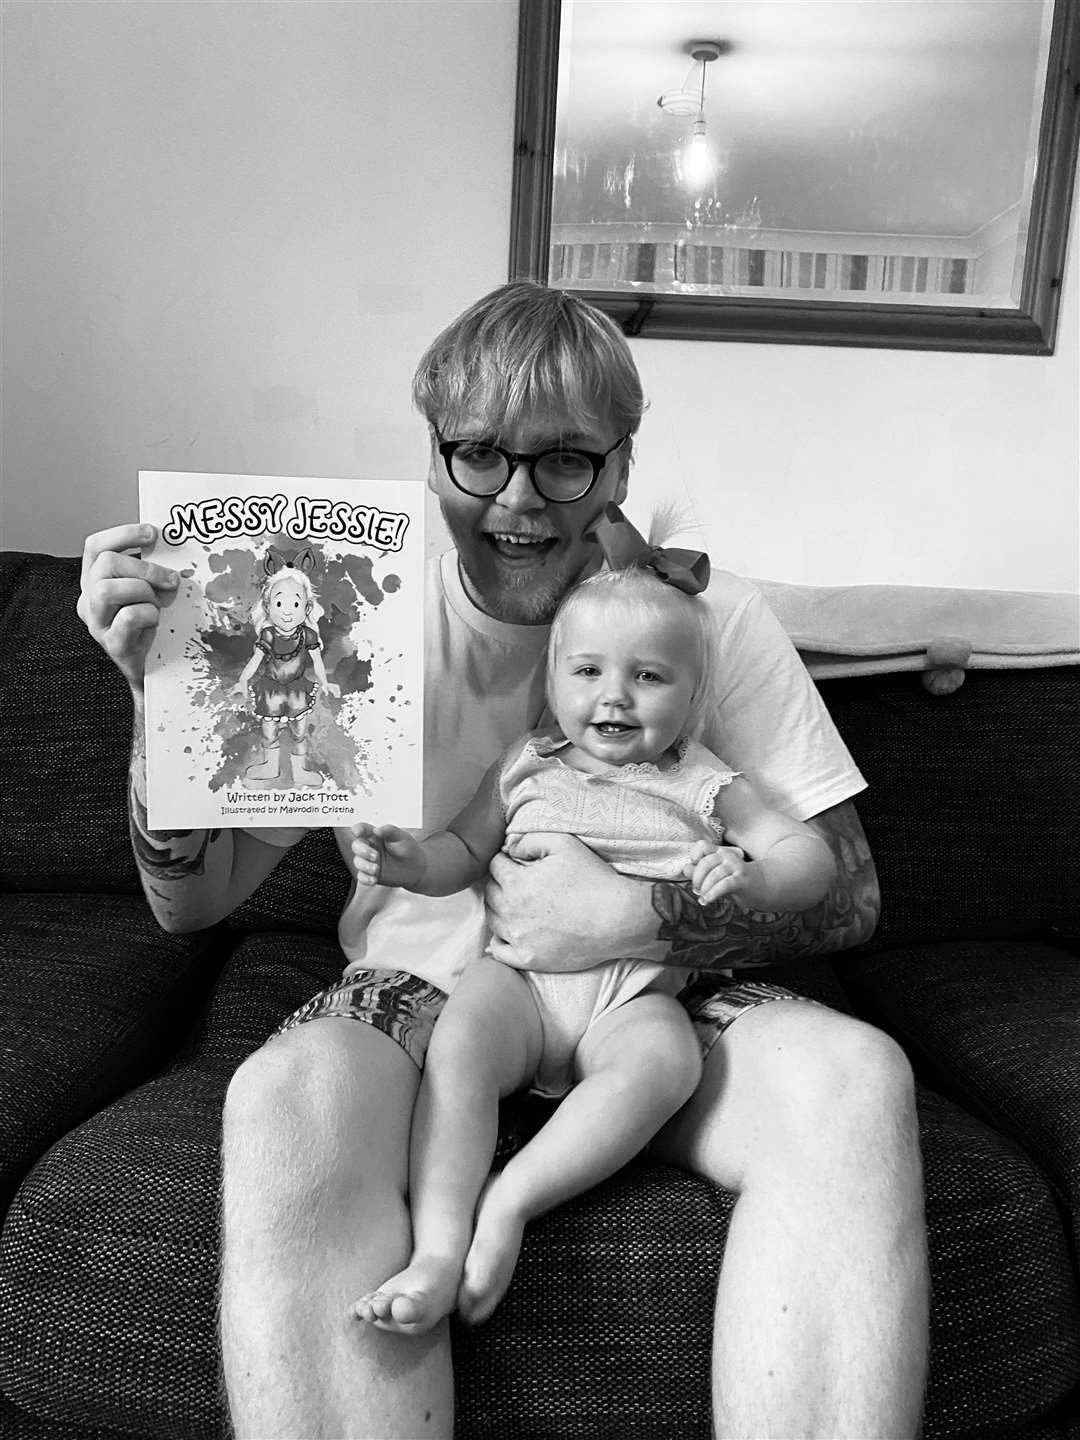 Jack Trott with daughter Jessica-Rose and his children's illustrated book. Contributed picture